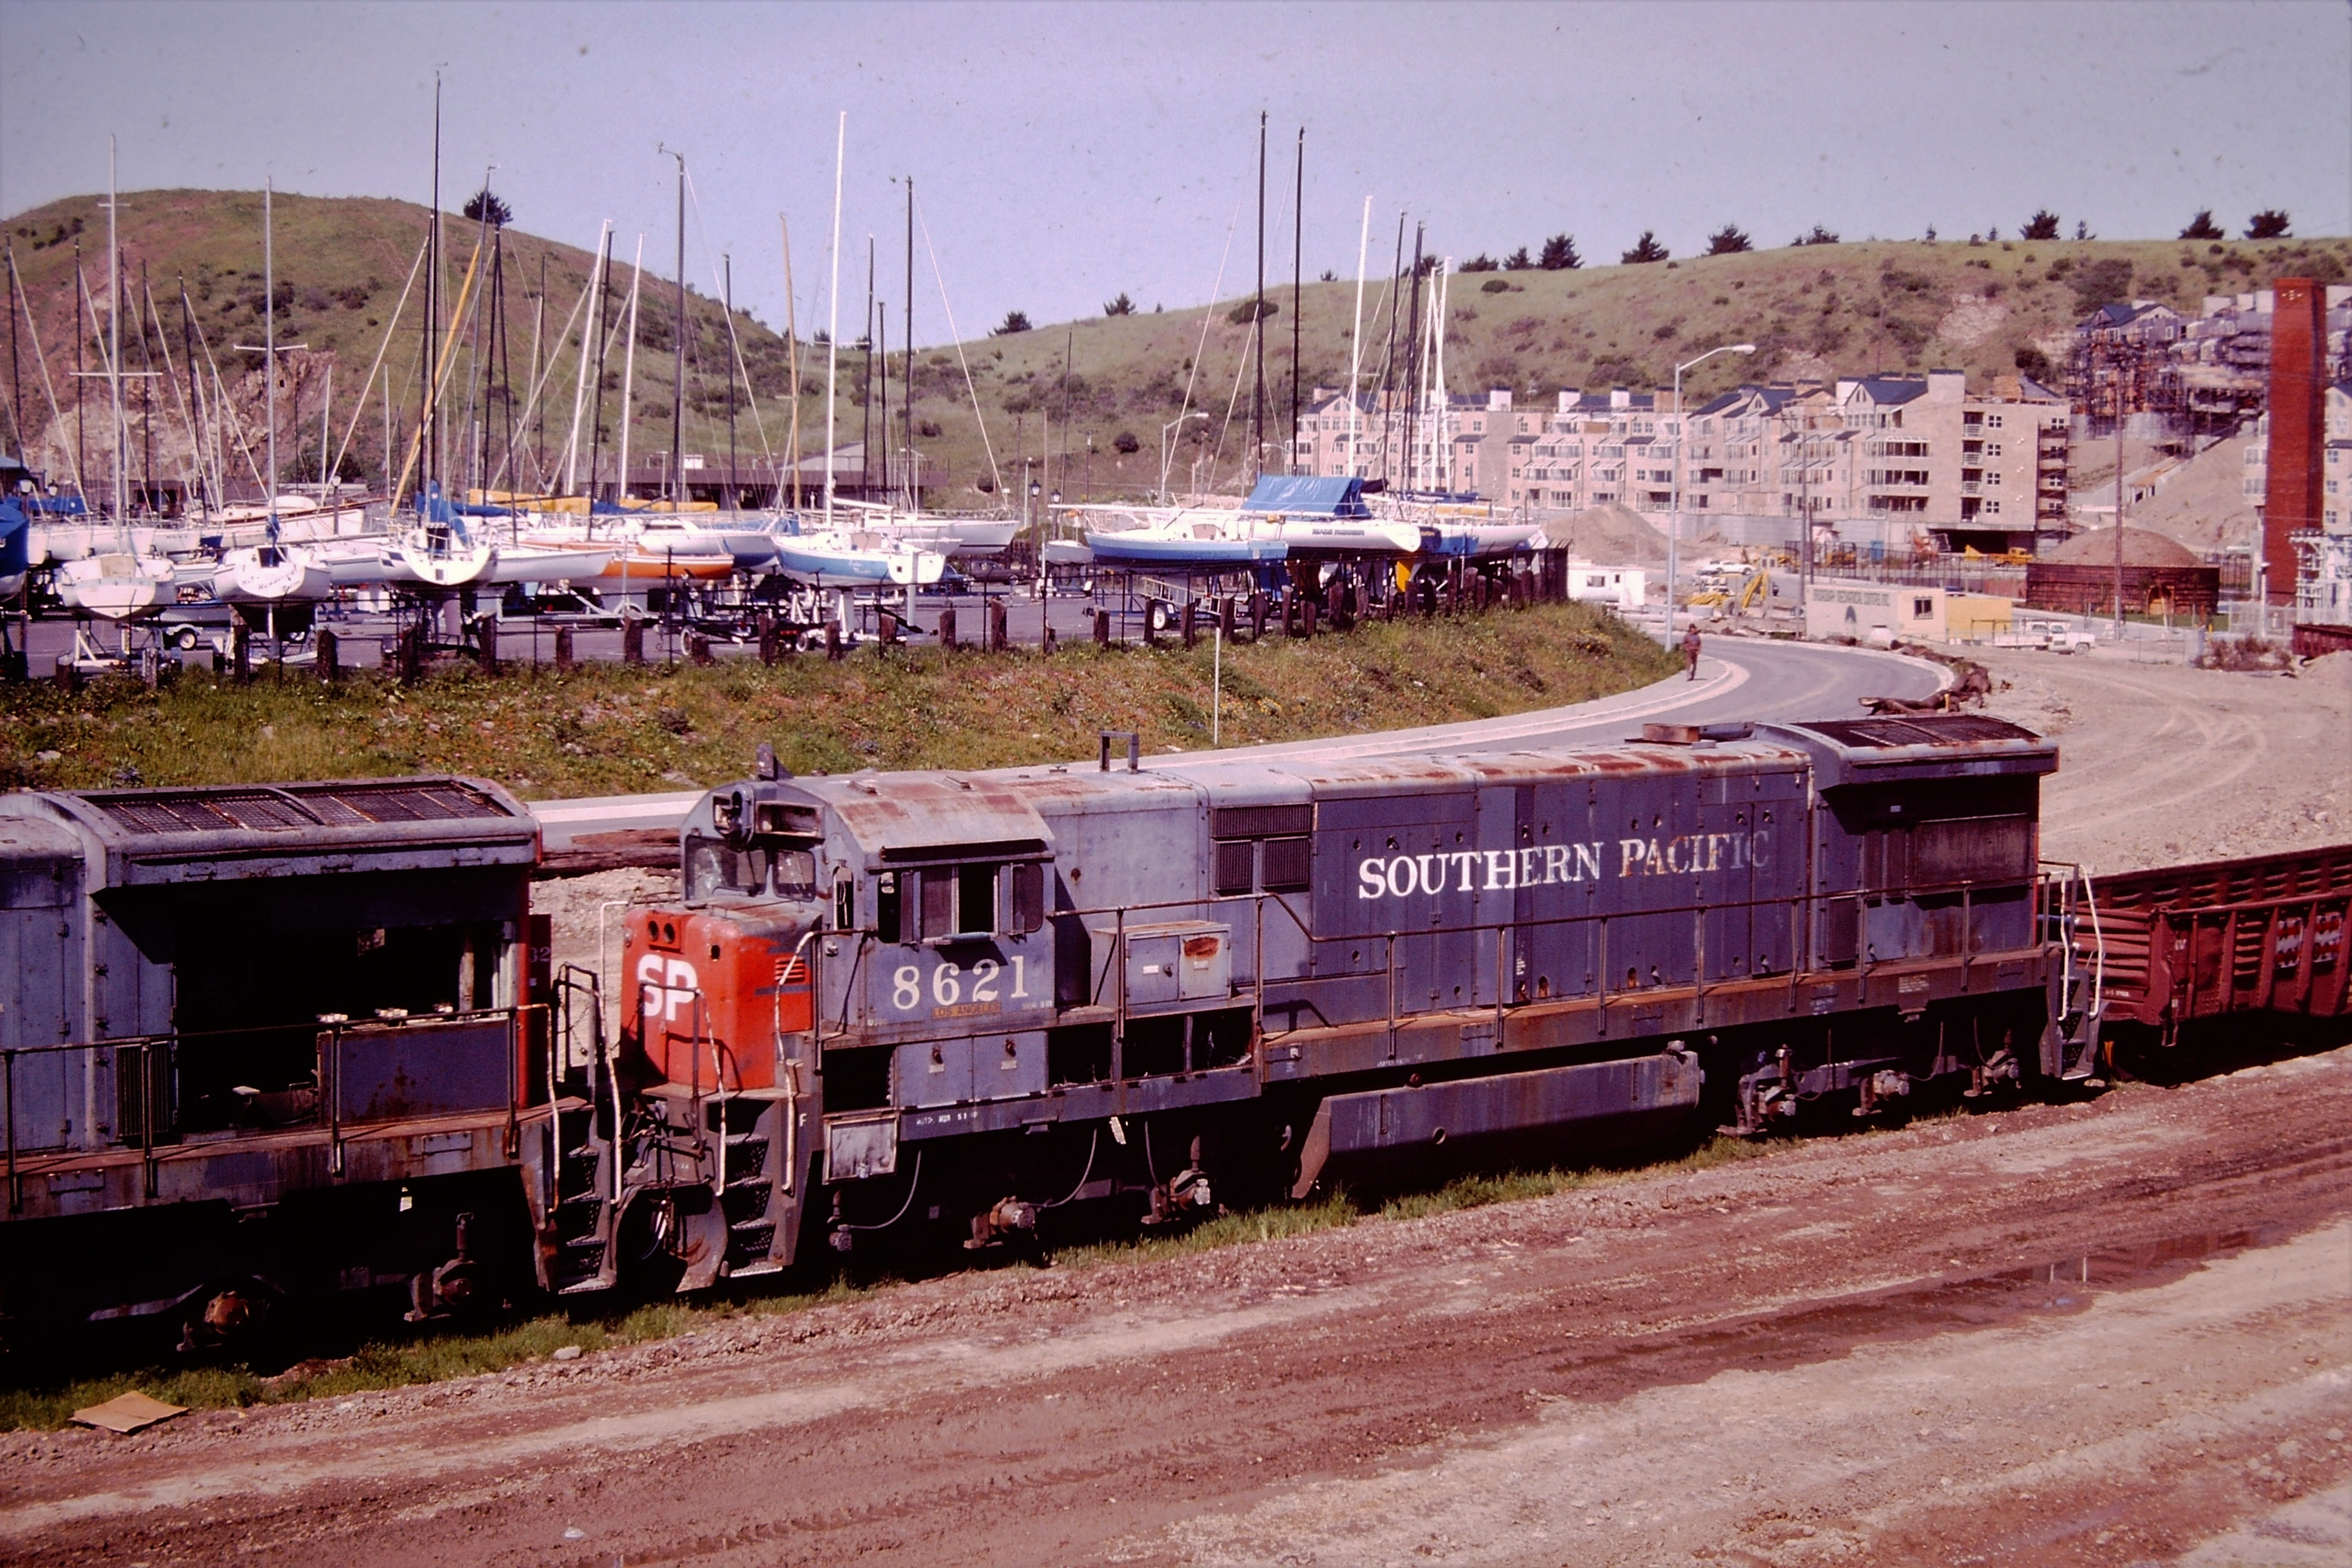 Southern Pacific 8621